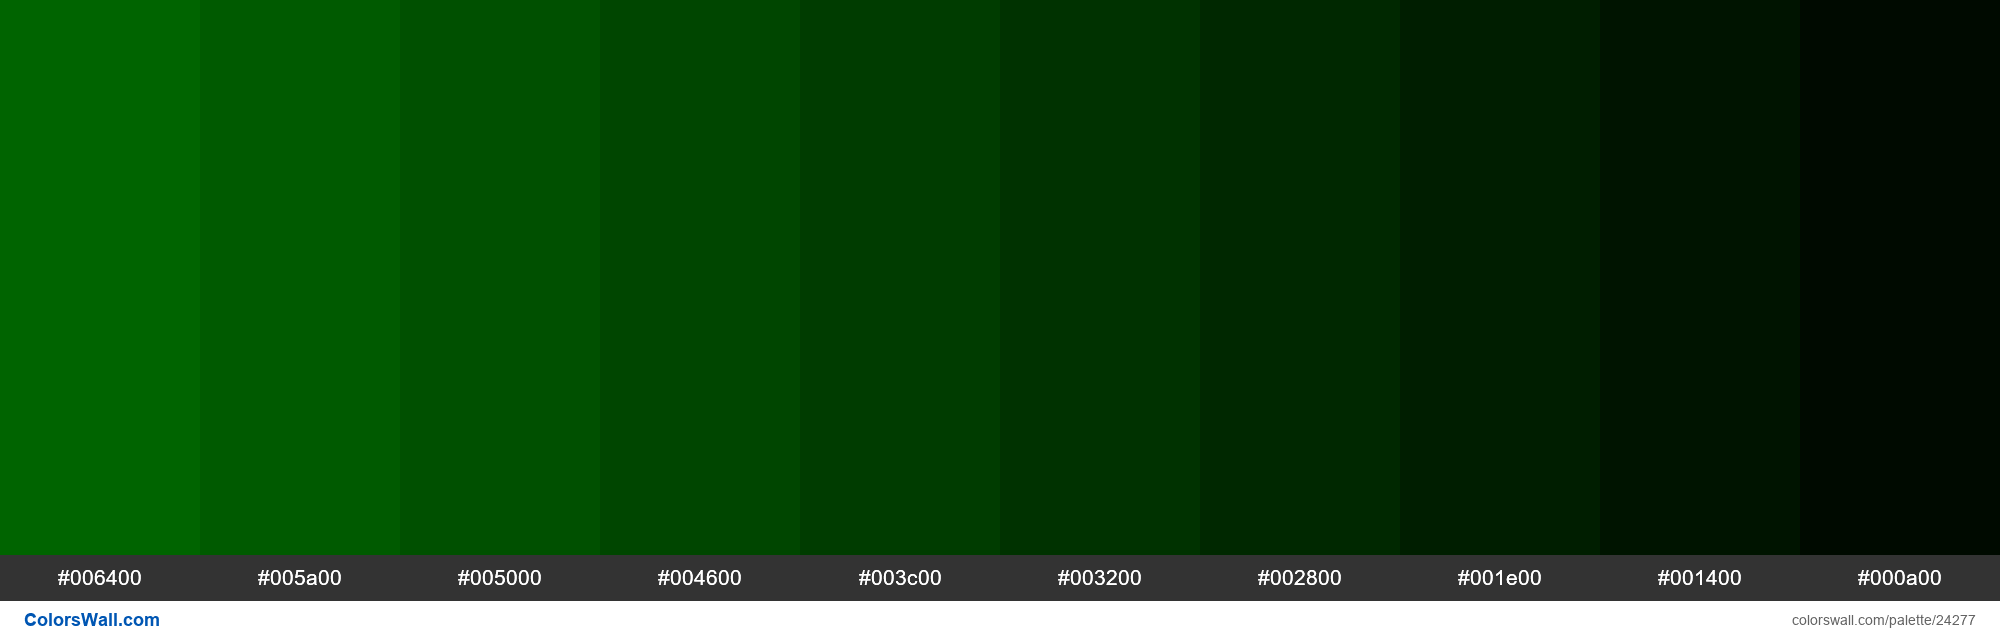 Shades of Dark Green #006400 hex color - #24277